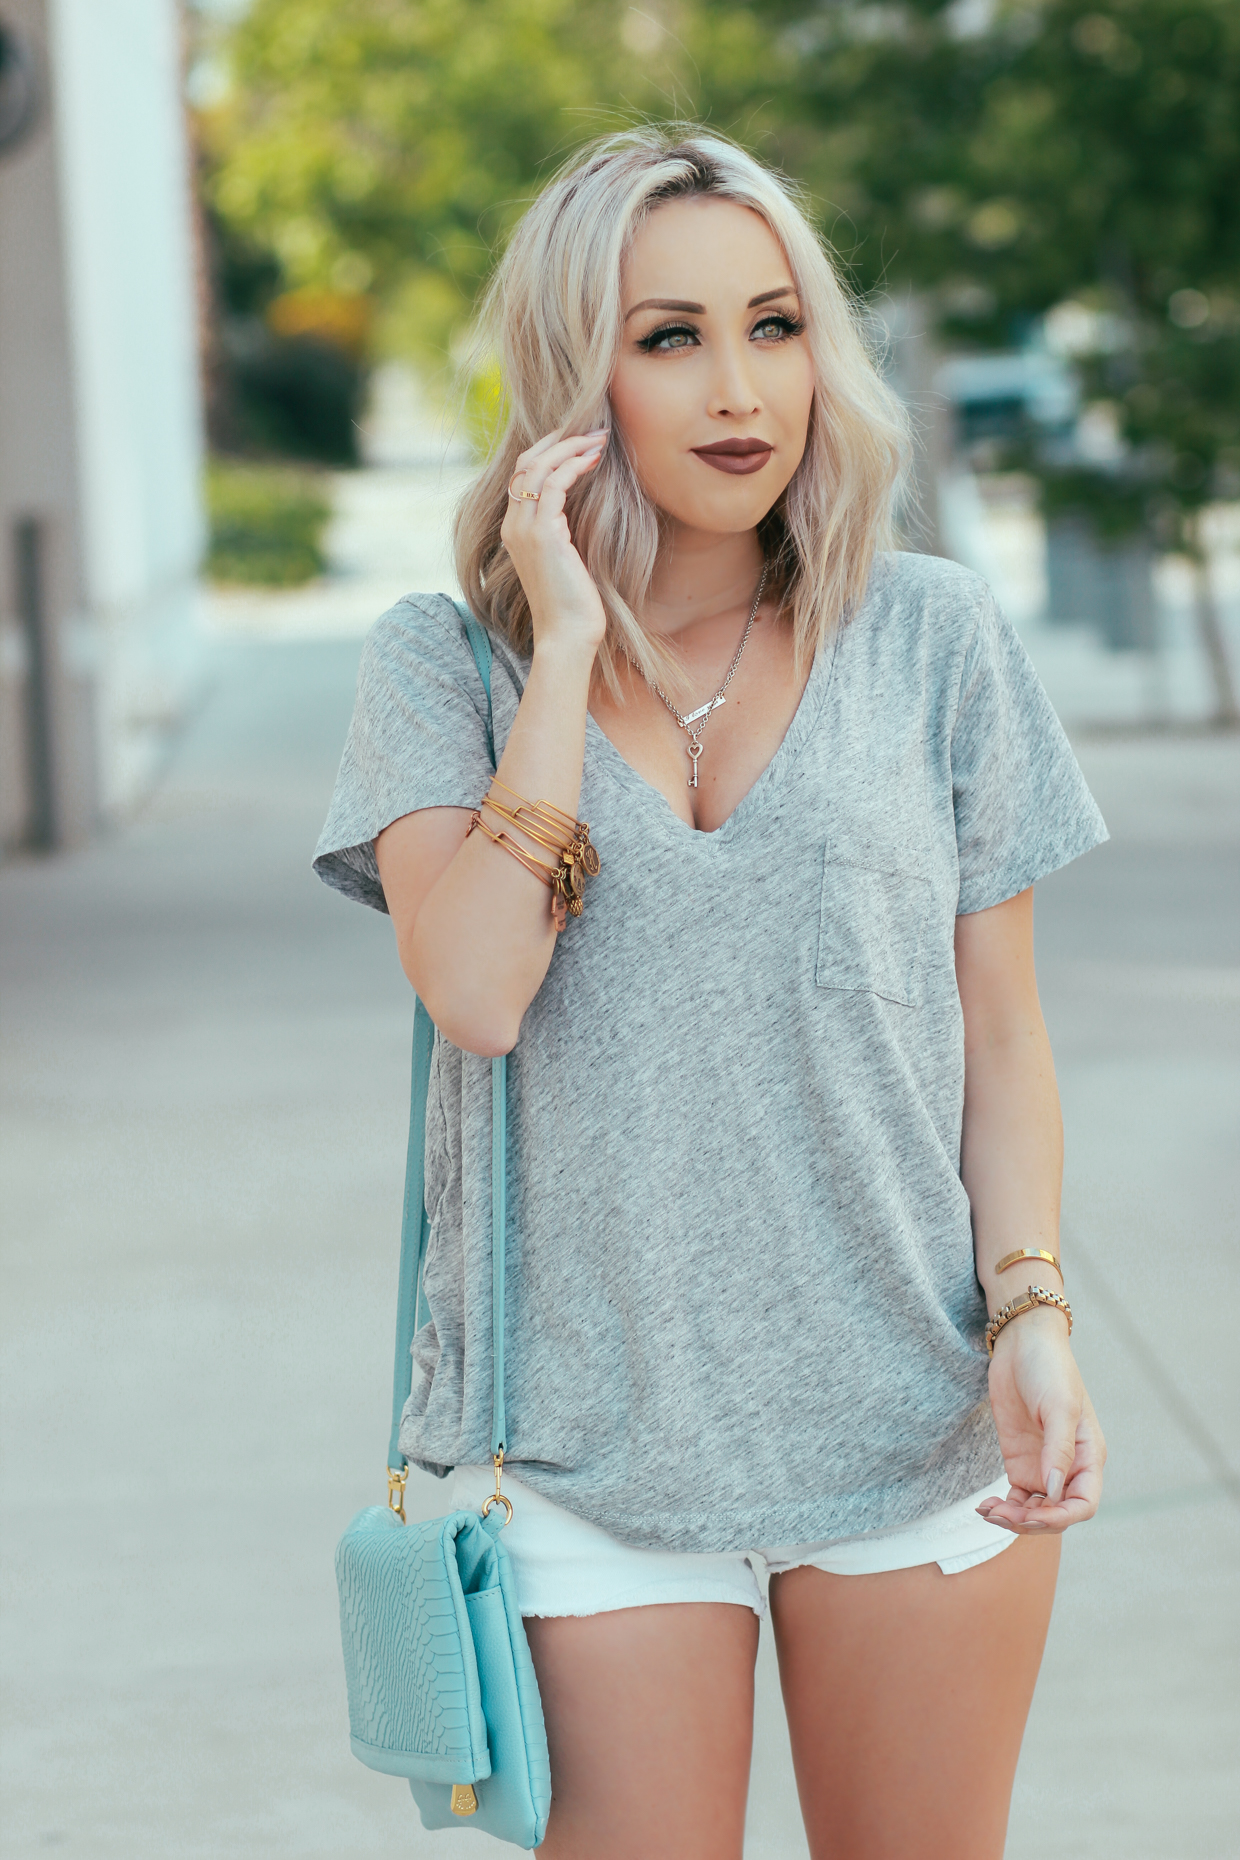 Blondie in the City | Perfect, Simple V-Neck Tee by @madewell - Crossbody Reversible Clutch by @giginewyork